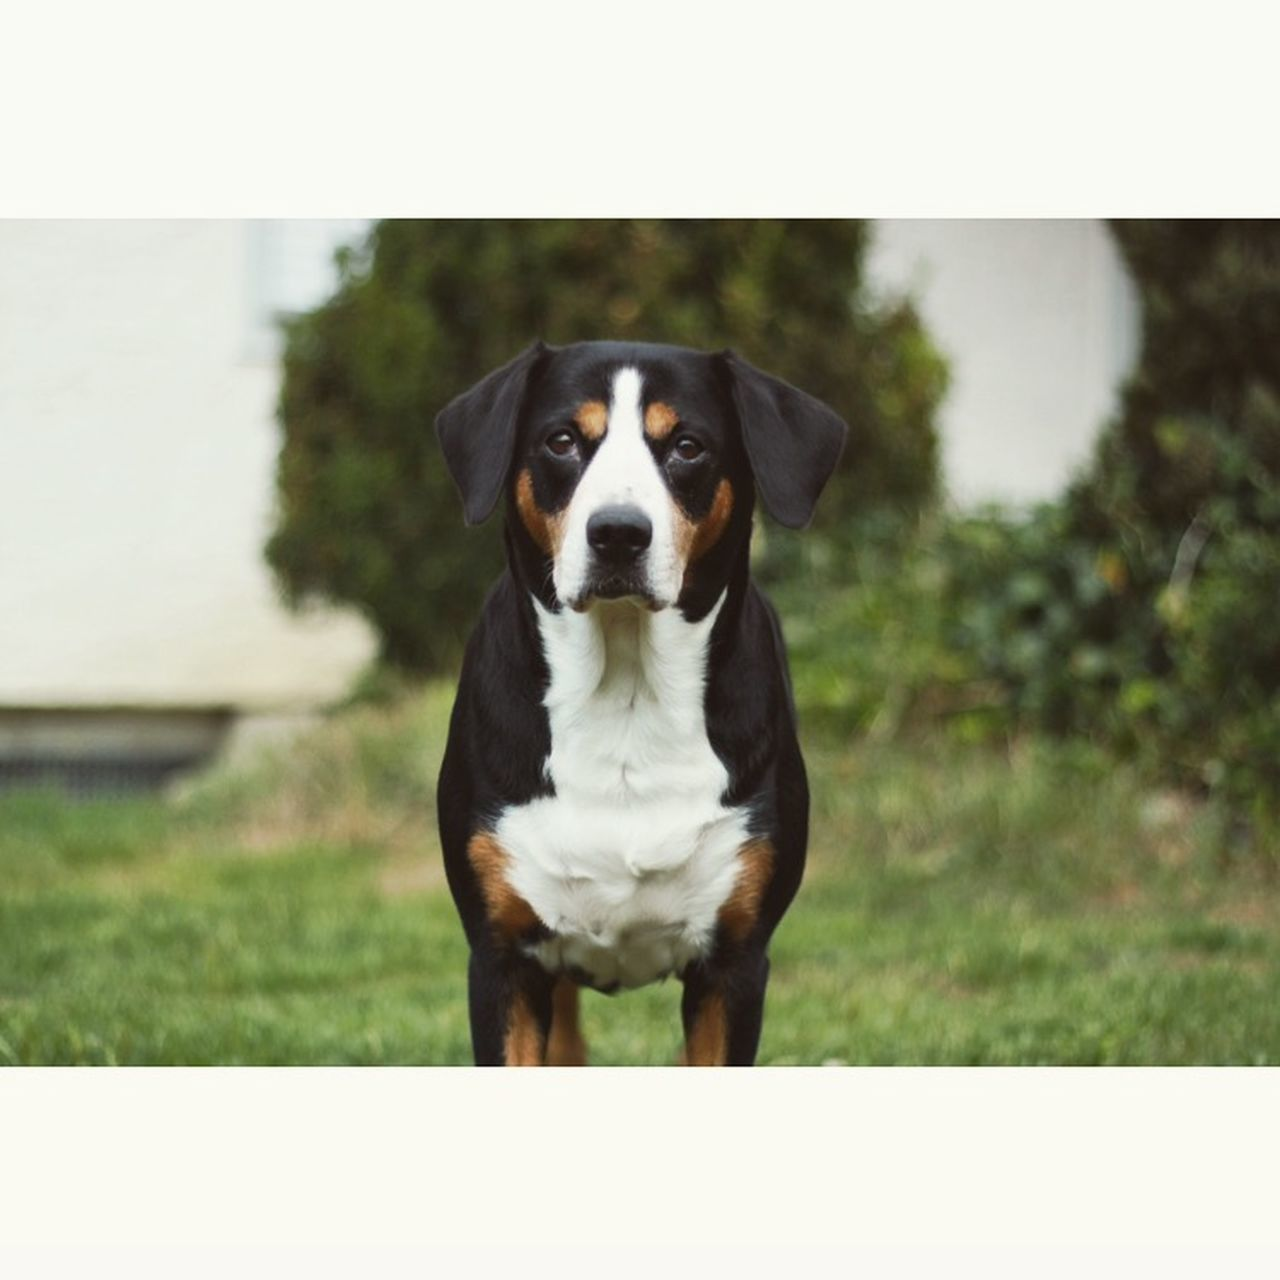 one animal, dog, domestic animals, pets, animal themes, day, outdoors, no people, focus on foreground, looking at camera, mammal, grass, standing, sitting, portrait, close-up